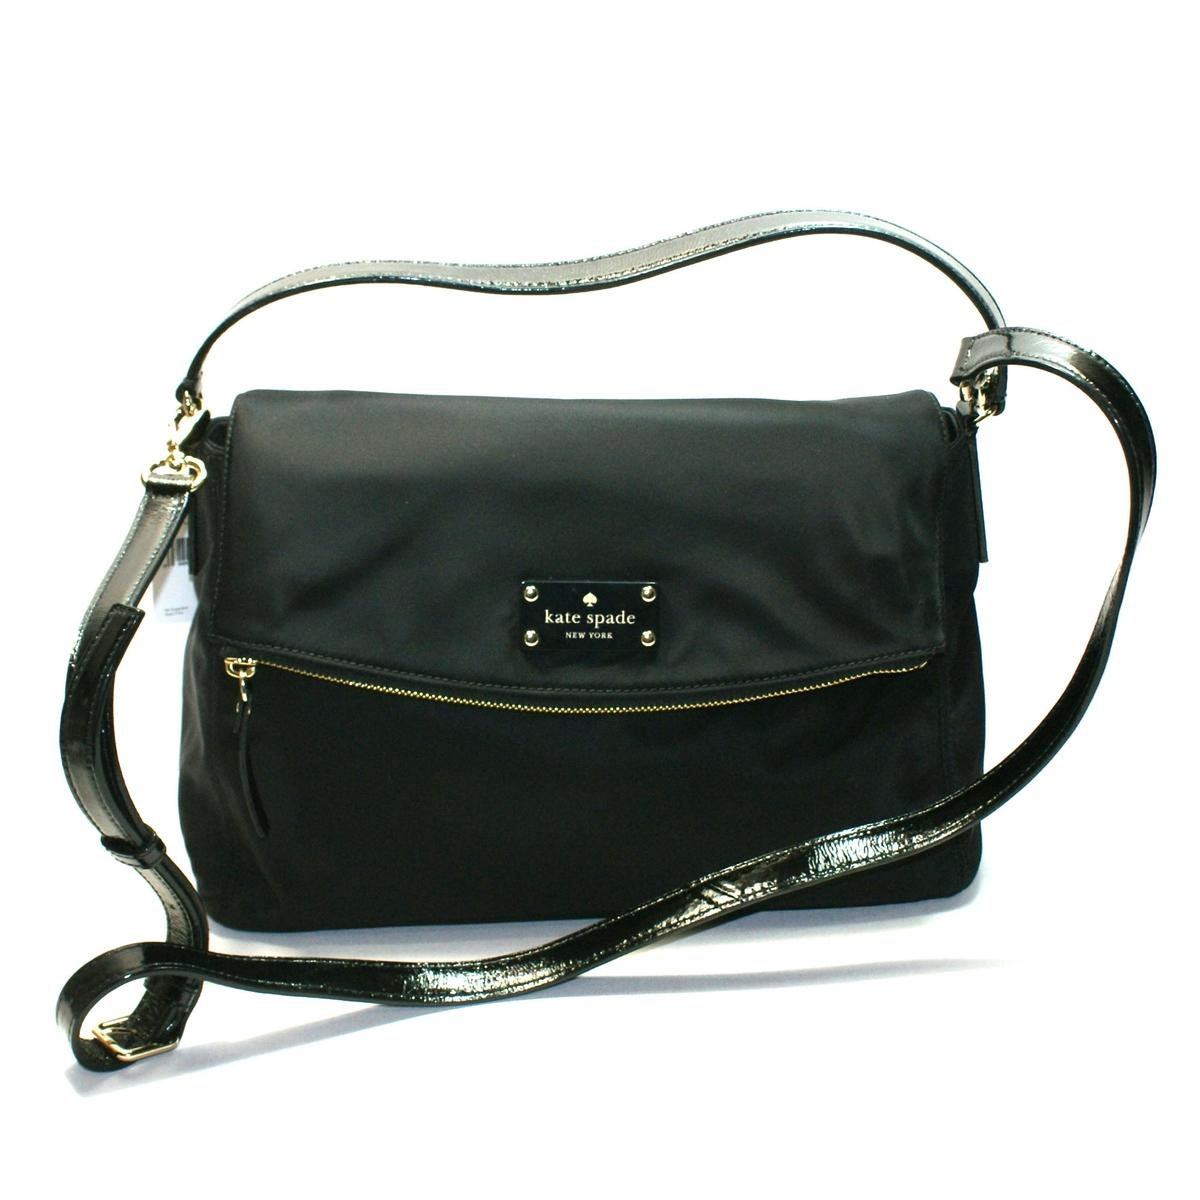 Kate Spade Little Minka Nylon Shoulder Bag Black Pxru4795